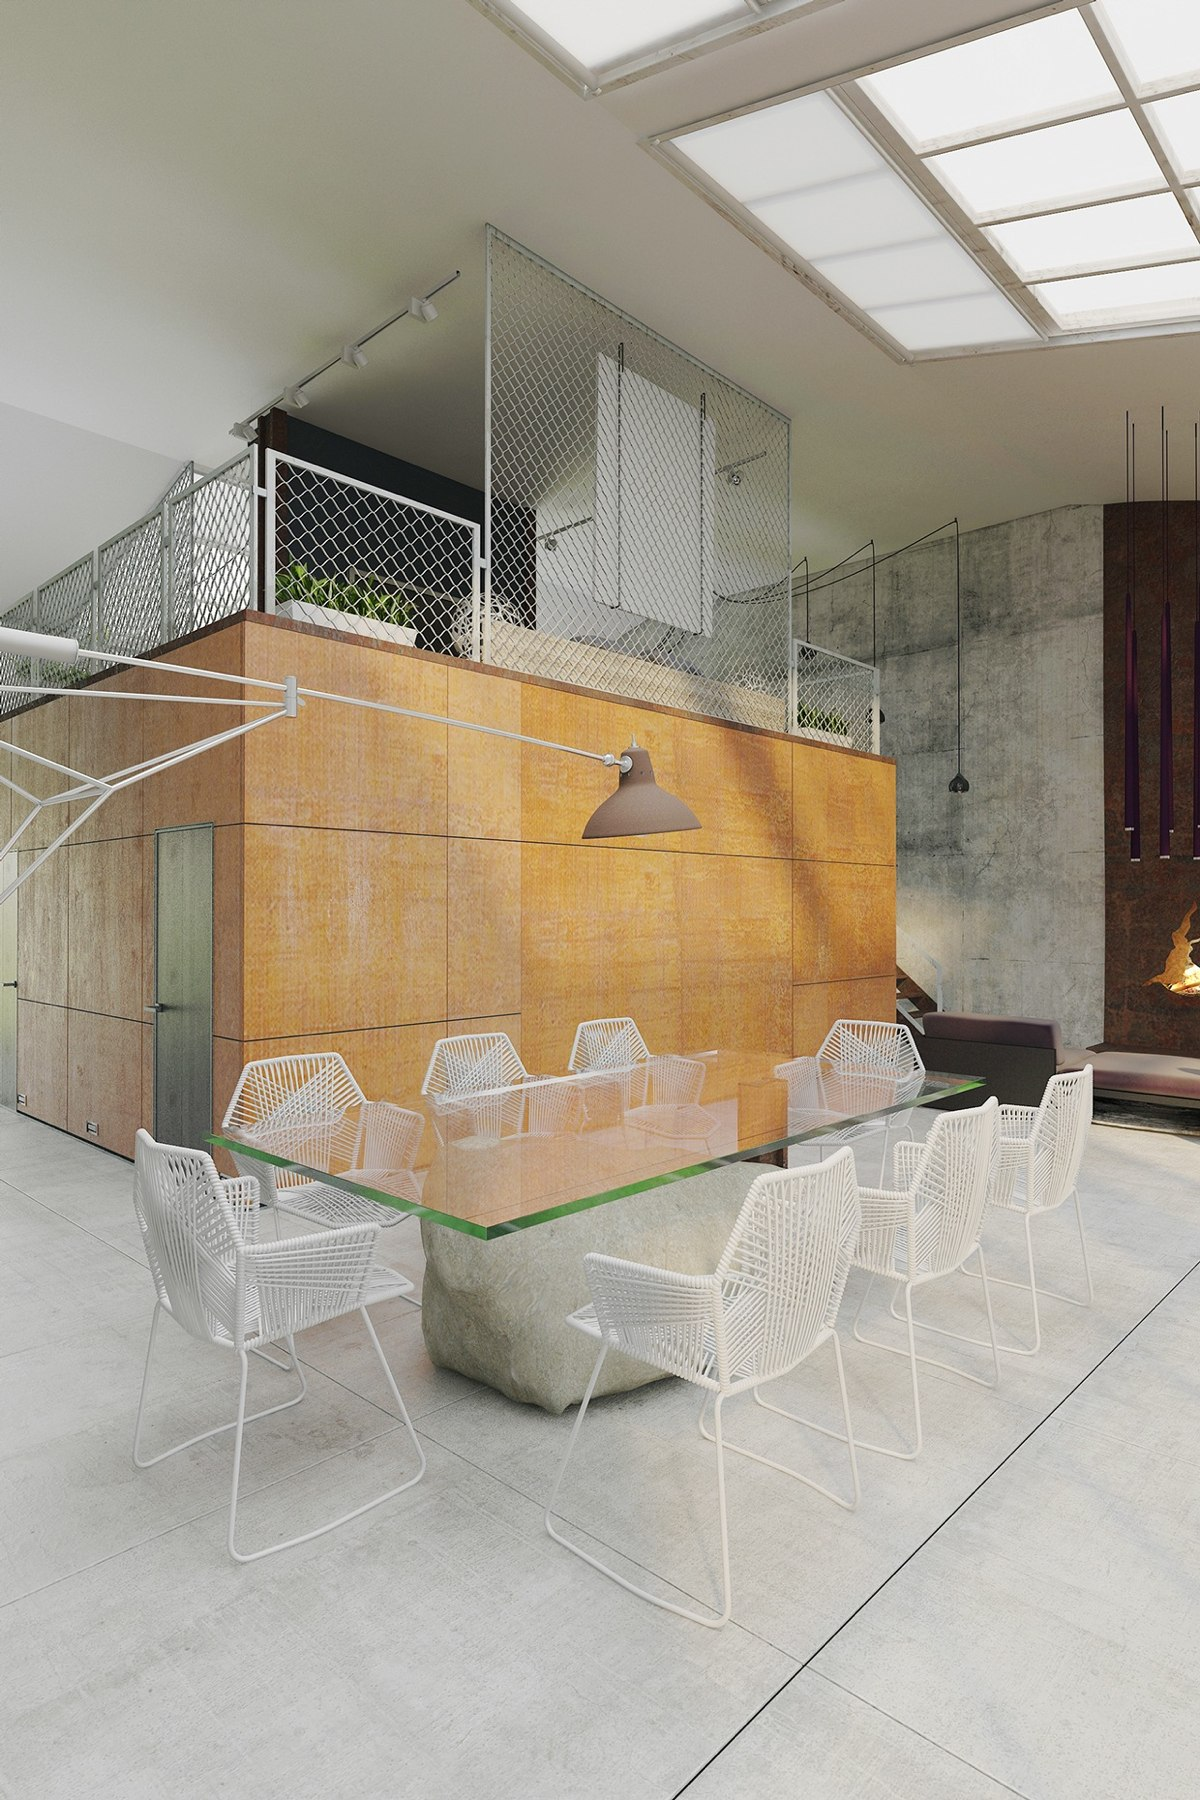 Cool Caged Loft - Homes that use a concrete finish to achieve beautiful results